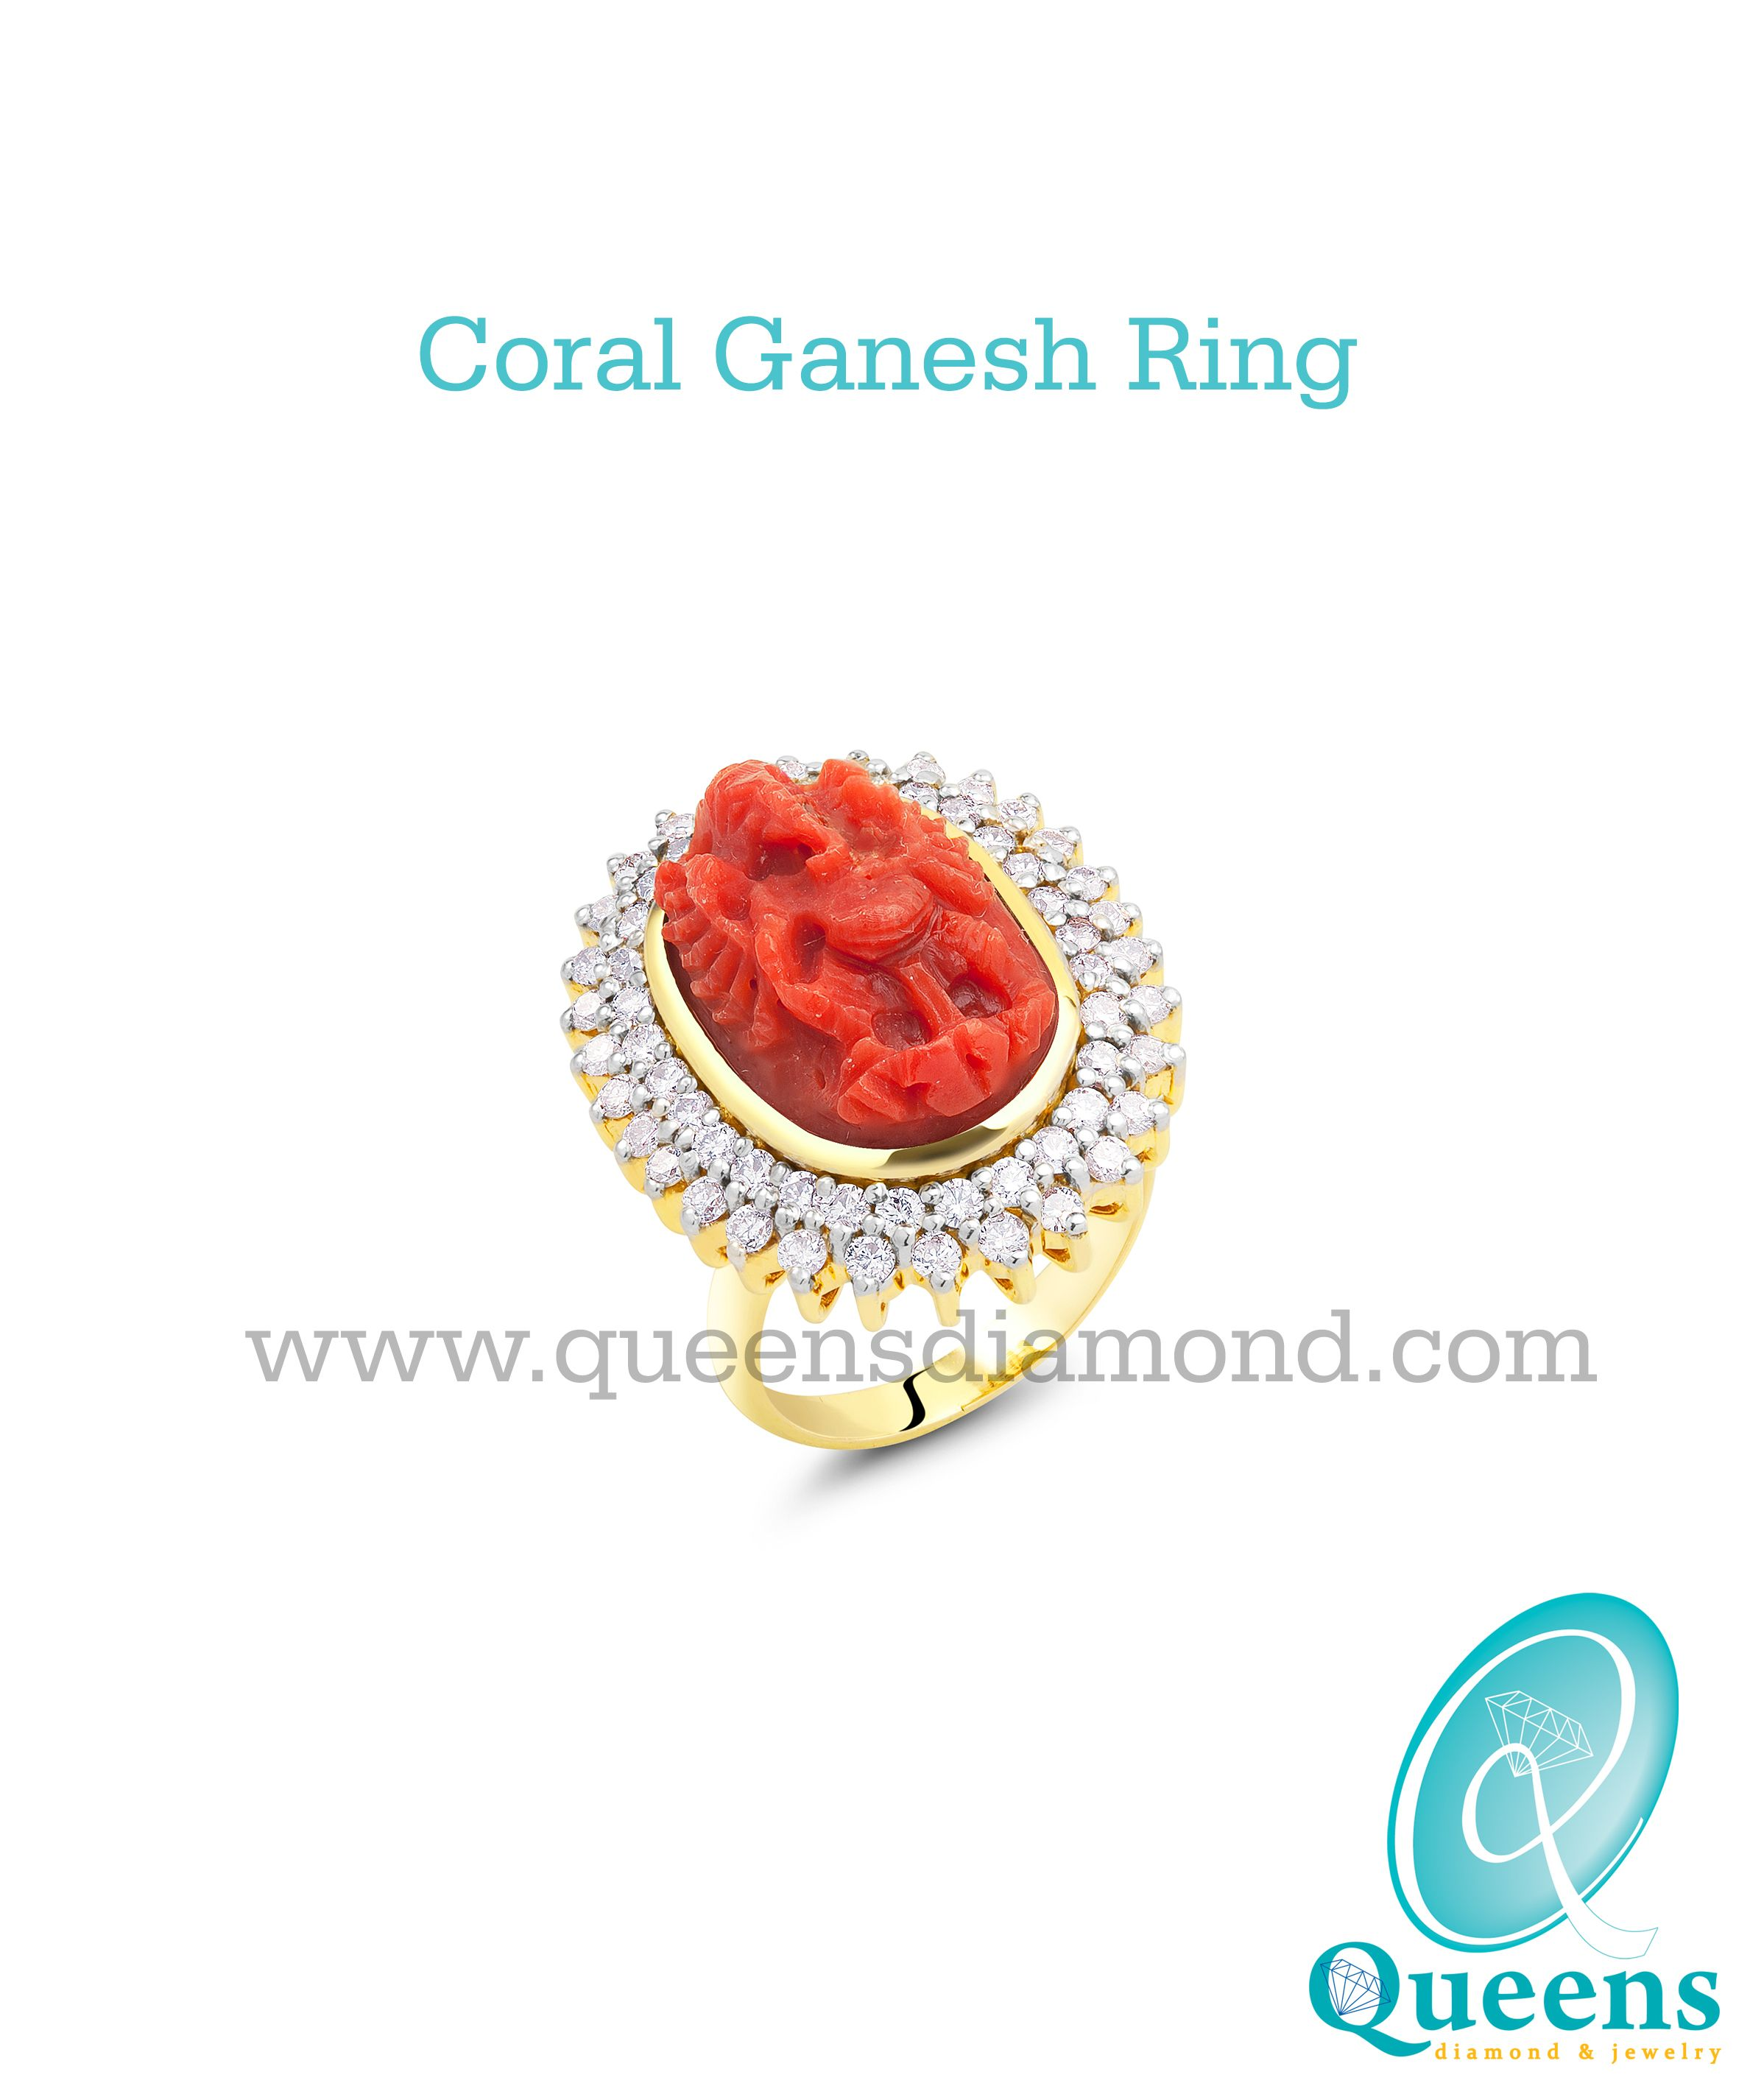 Coral Ganesh And Diamond Ring In 18K Gold Httpwwwqueensdiamond